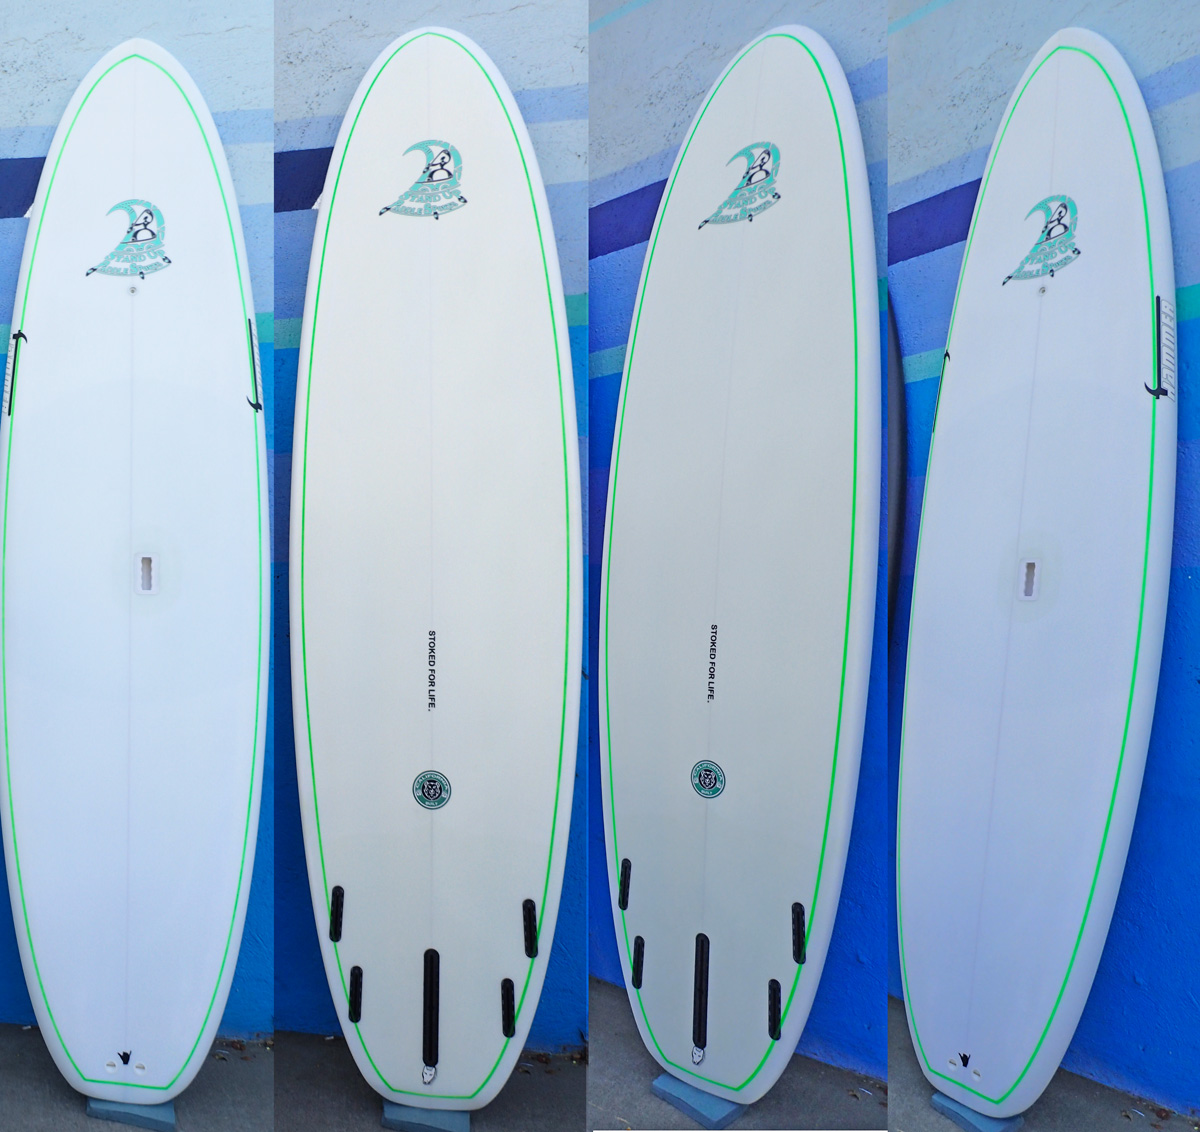 Made In USA QVP SUP Series